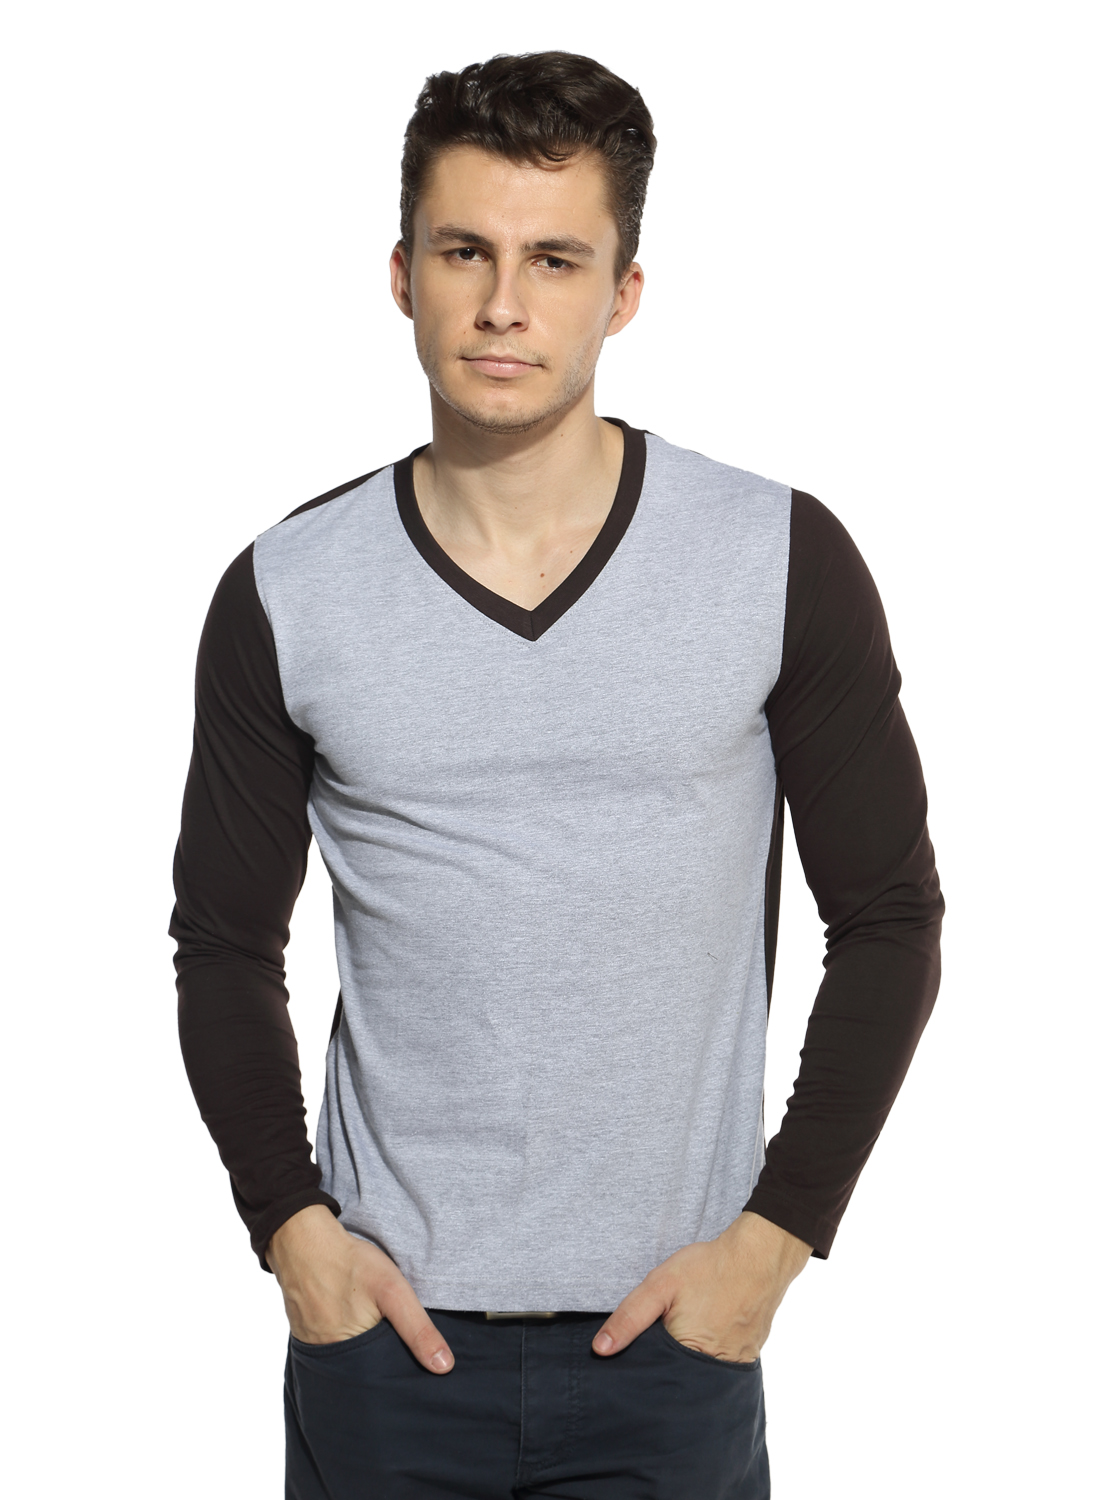 Find great deals on eBay for Mens Long Sleeve V Neck in T-Shirts and Men's Clothing. Shop with confidence.